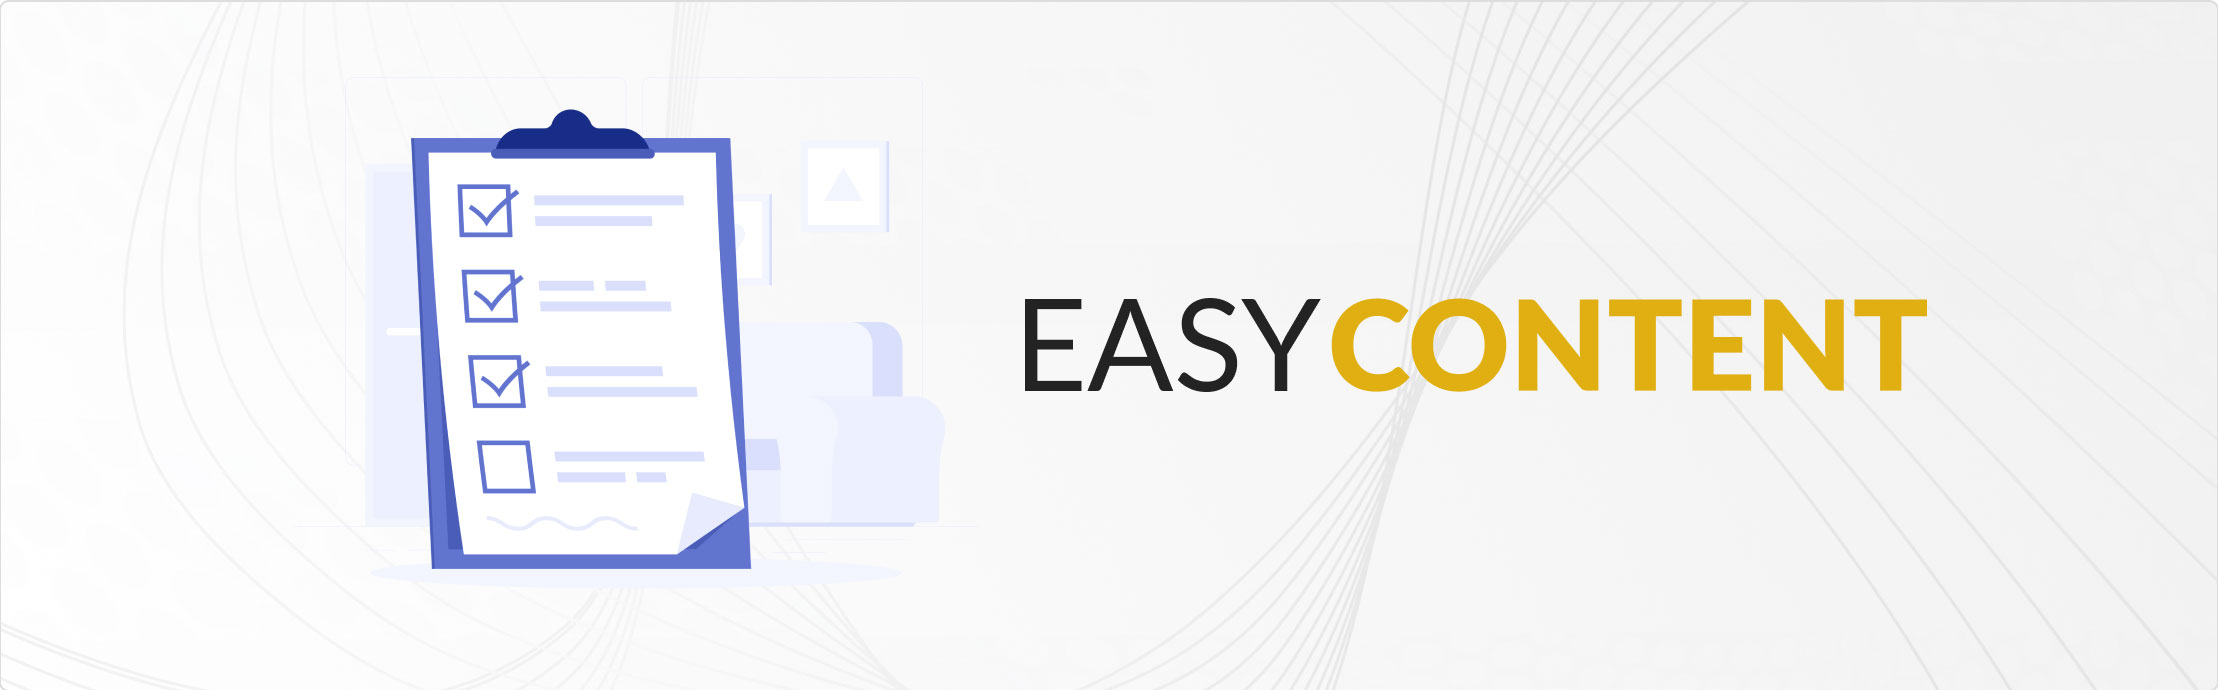 EasyContent vs Google Docs